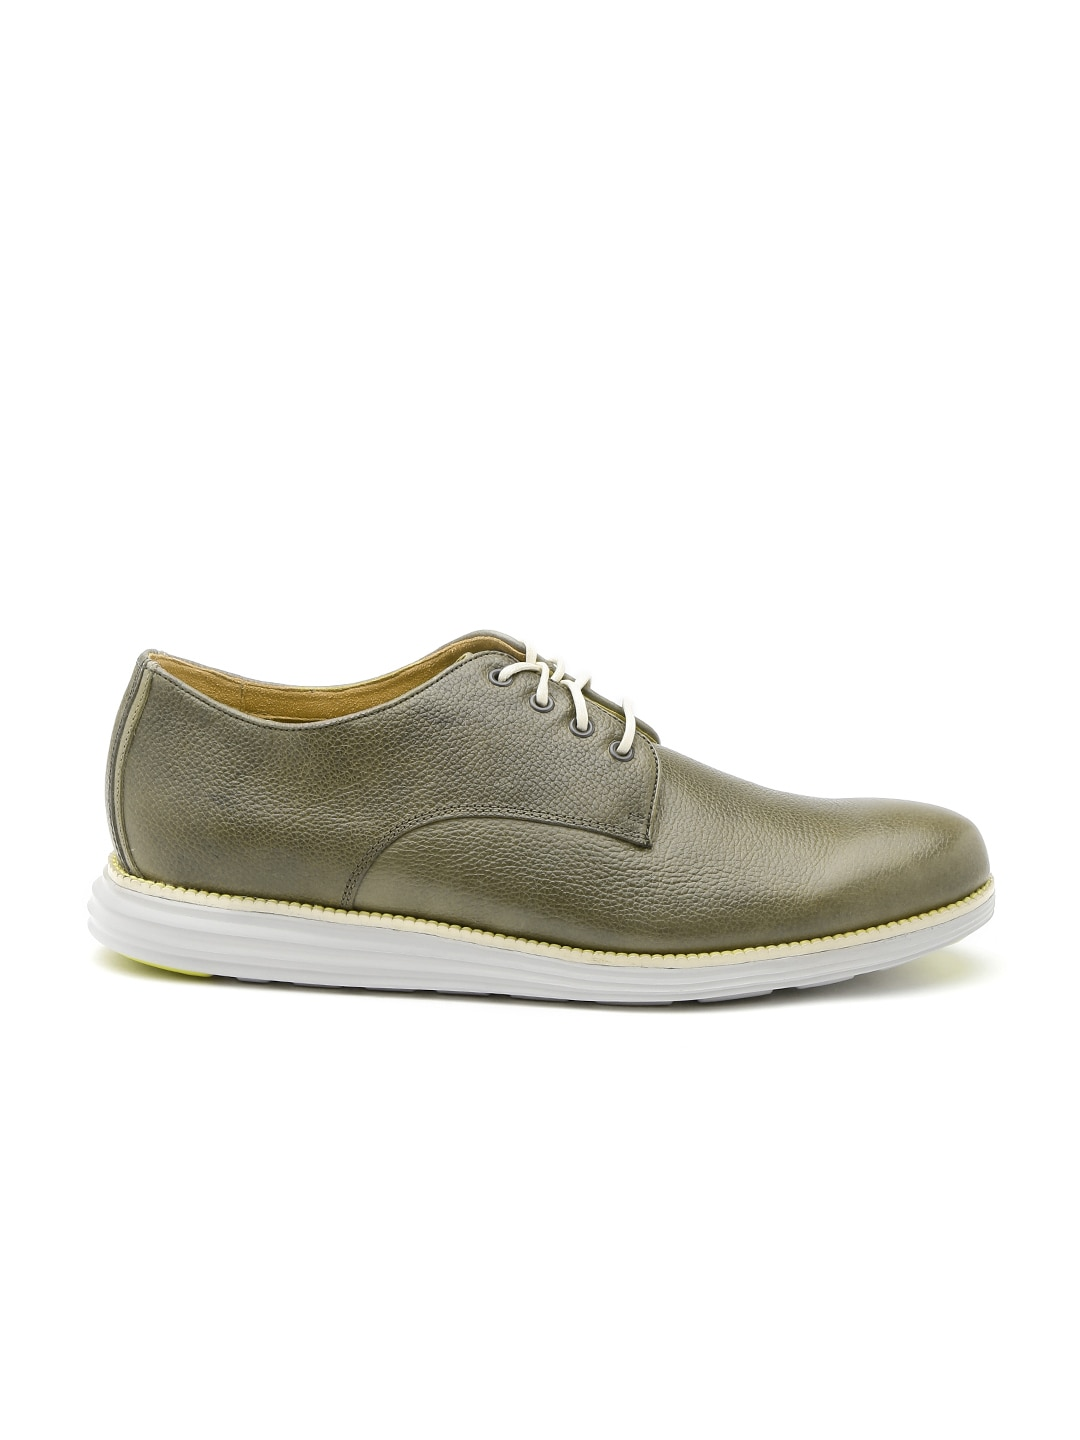 buy cole haan olive green leather casual shoes